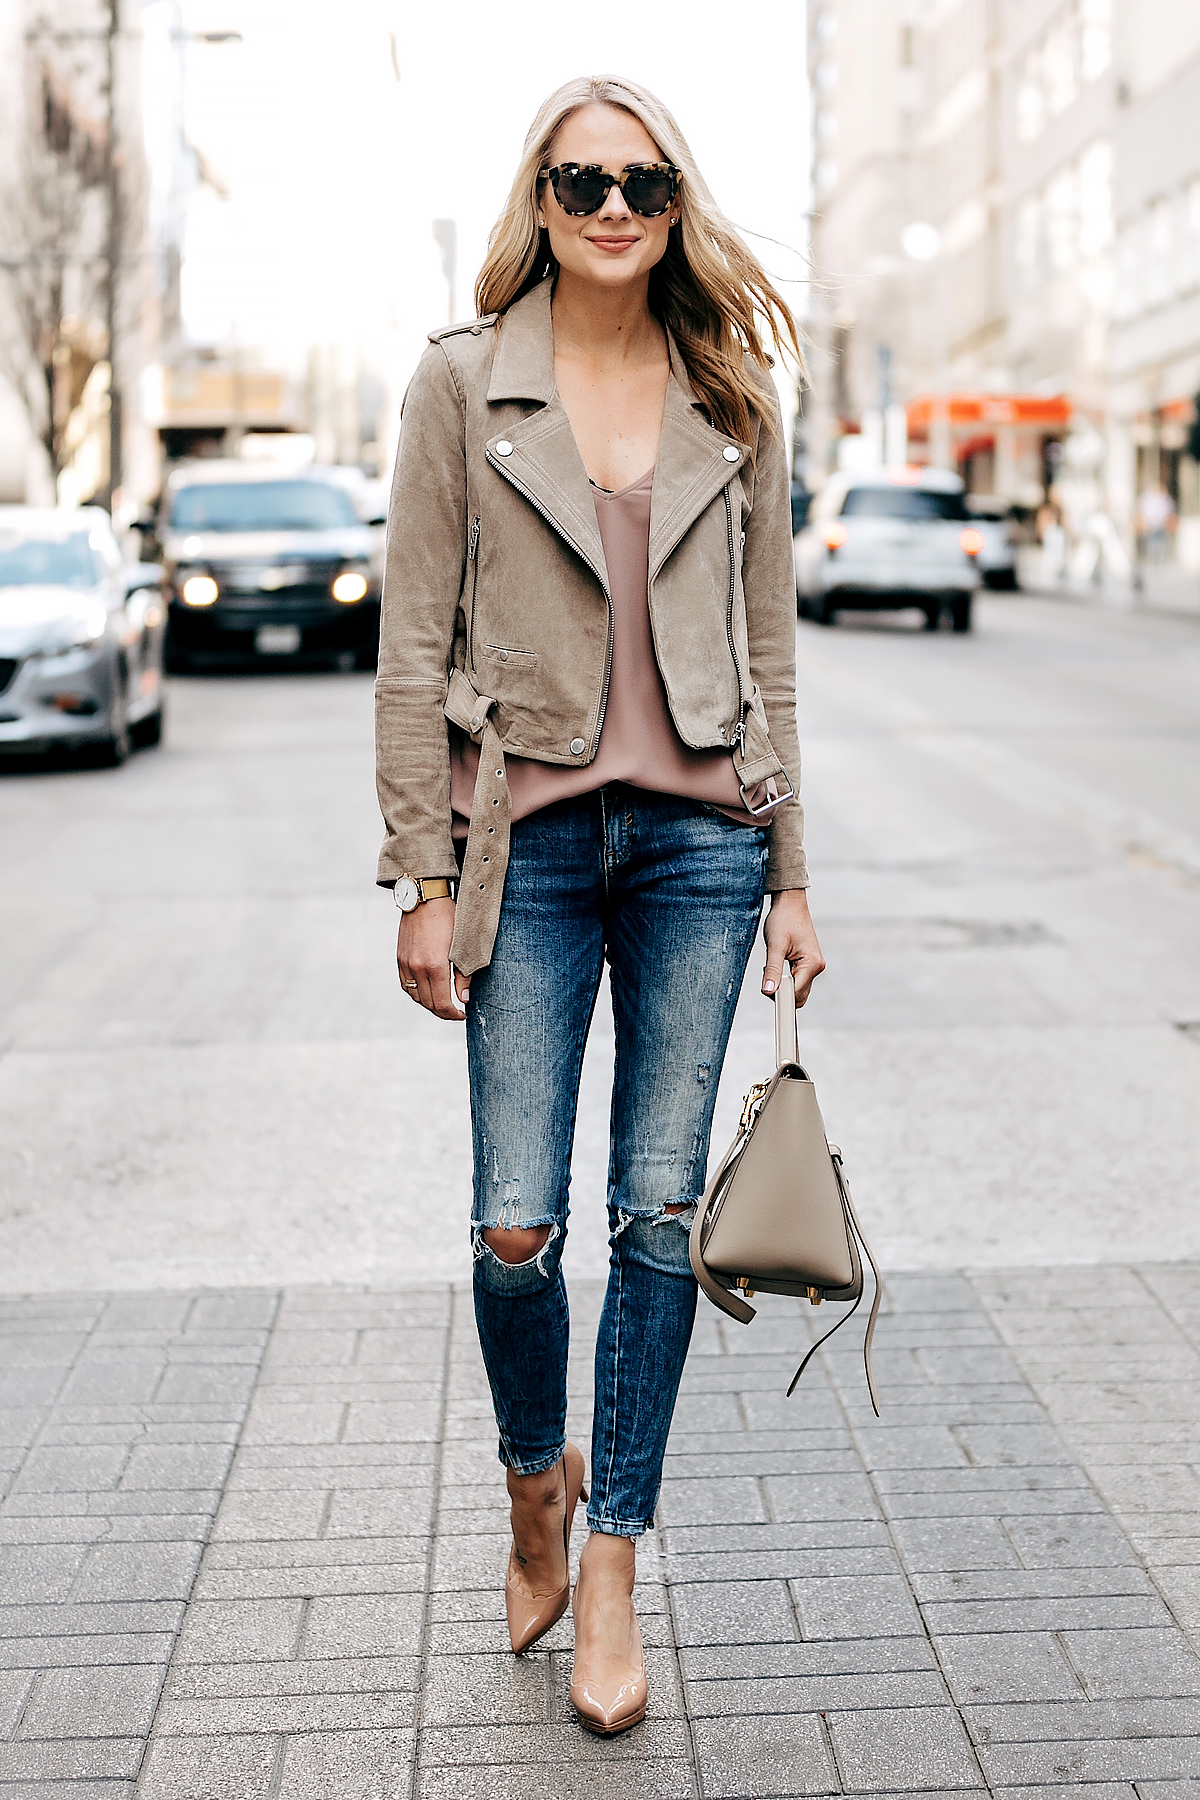 Fashion Jackson Wearing Blanknyc Tan Suede Moto Jacket Blush Cami Denim Ripped Skinny Jeans Nude Pumps